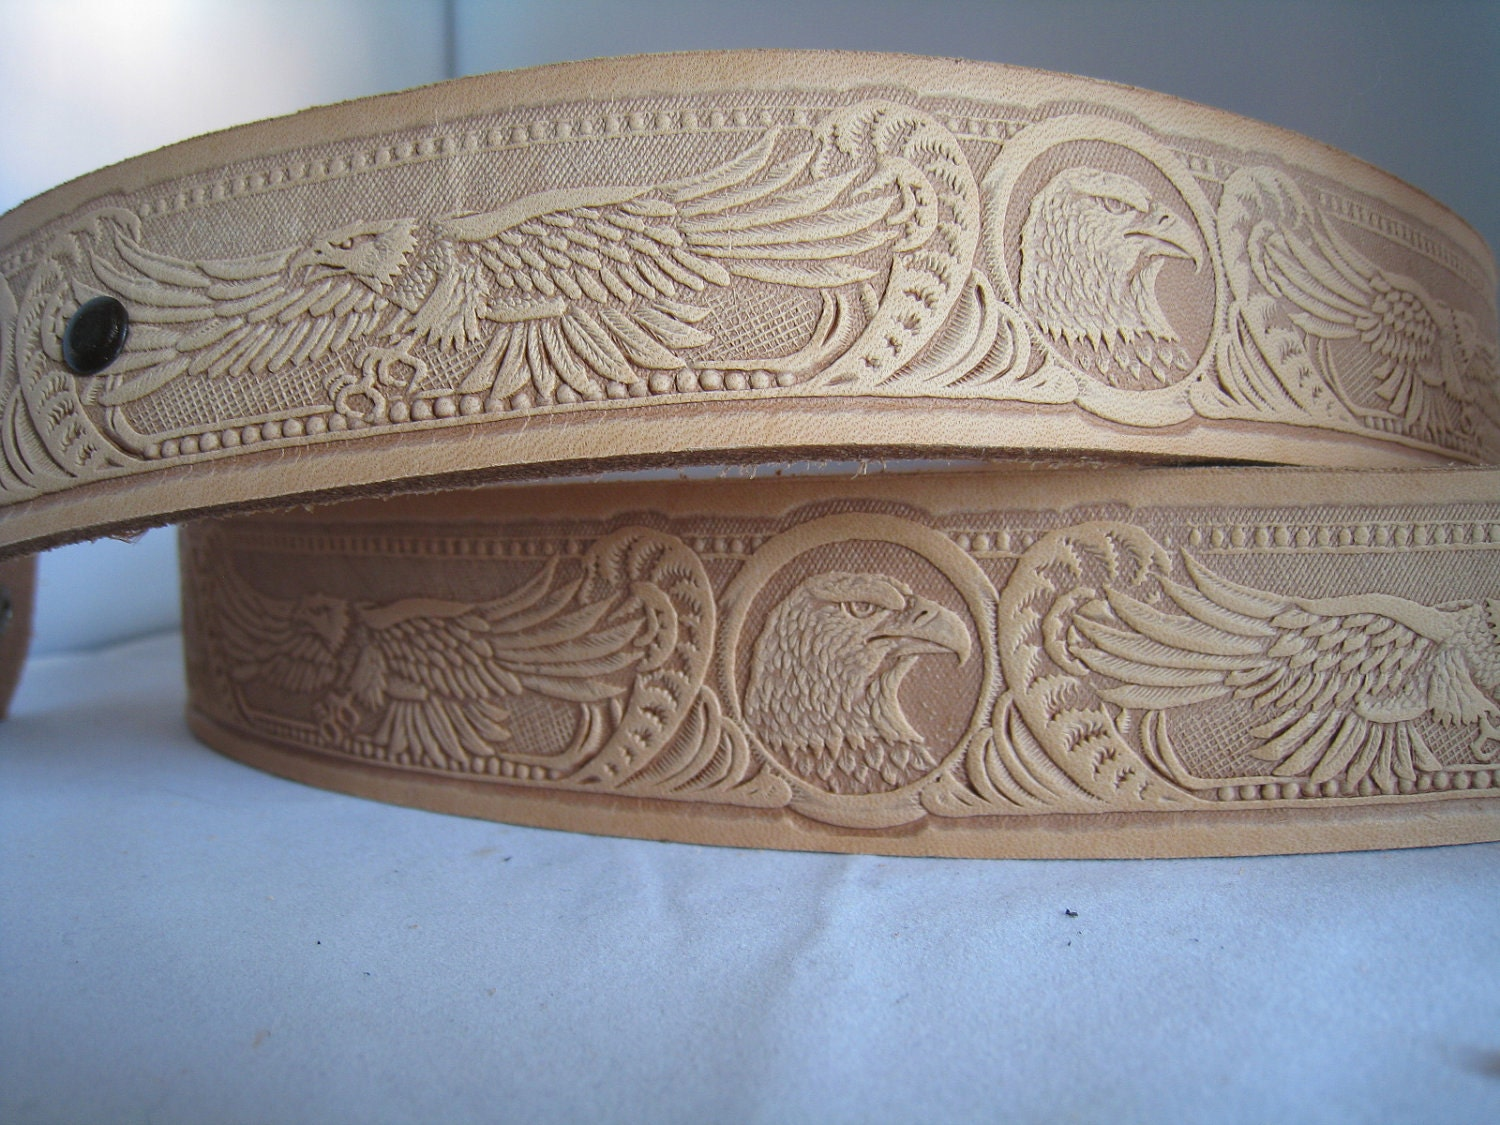 tandy leather embossed belt blank eagle by